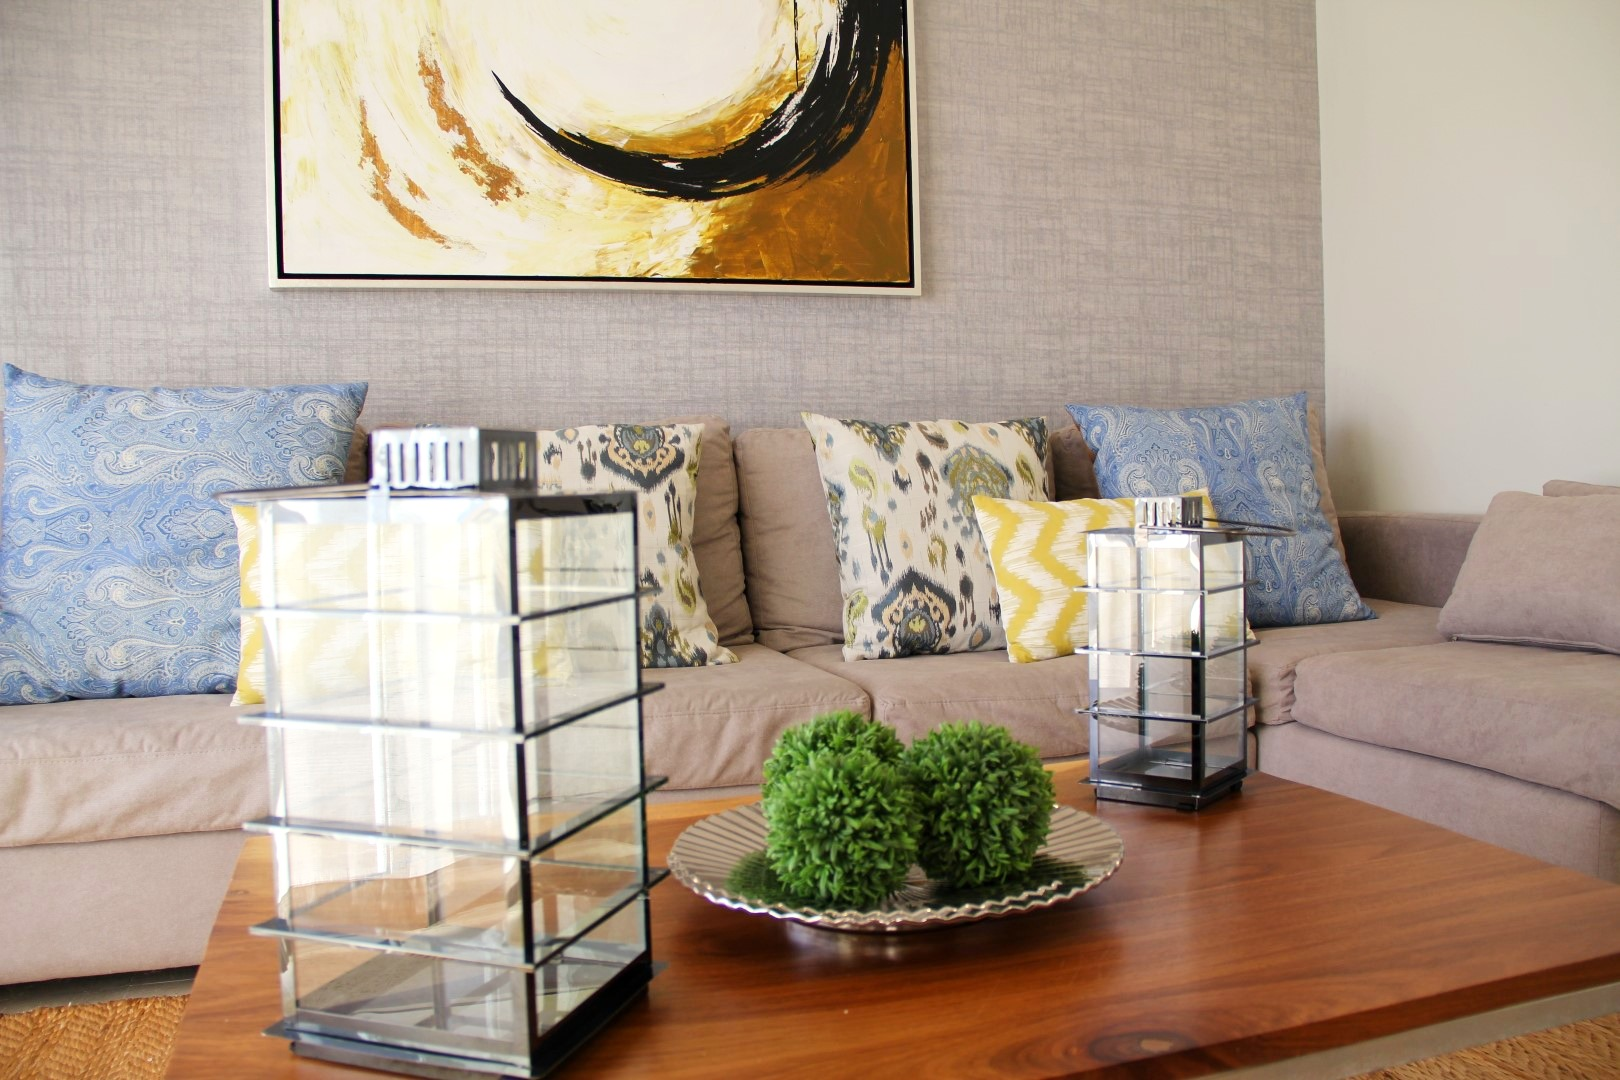 Professionally decorated spaces.